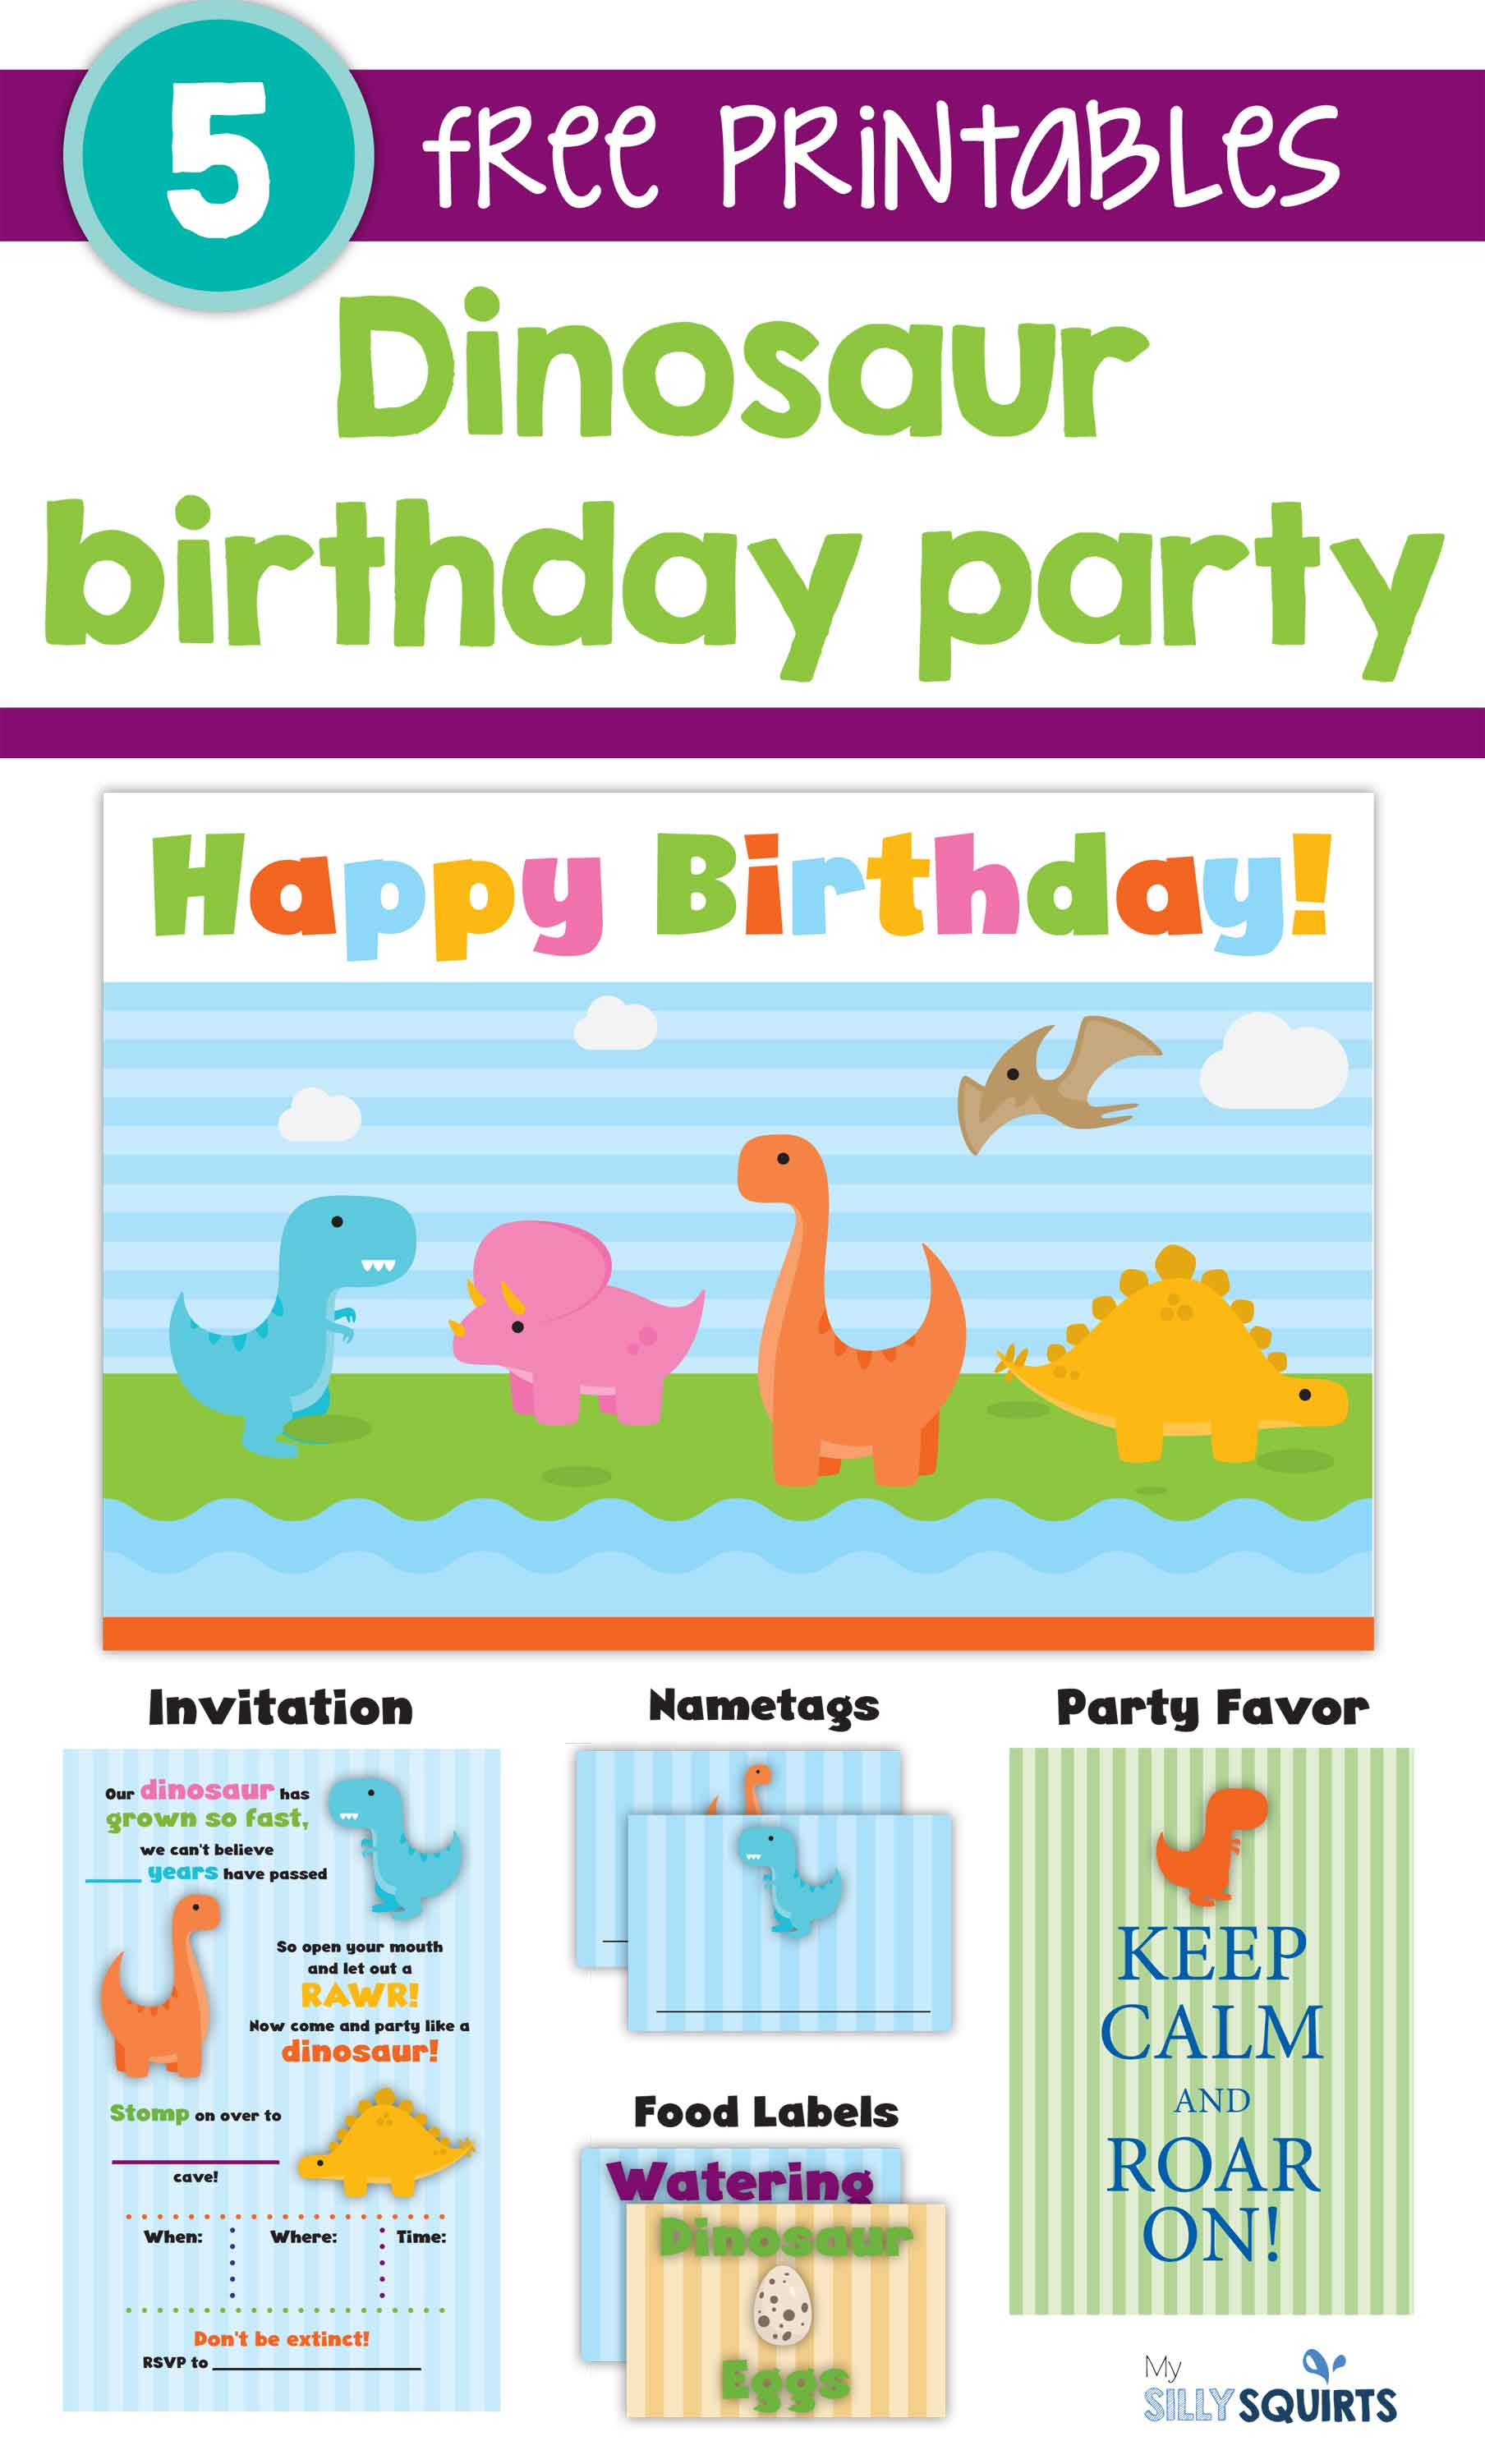 graphic about Free Printable Food Labels for Party referred to as Rawr! Free of charge Dinosaur Birthday Occasion Printables My Foolish Squirts